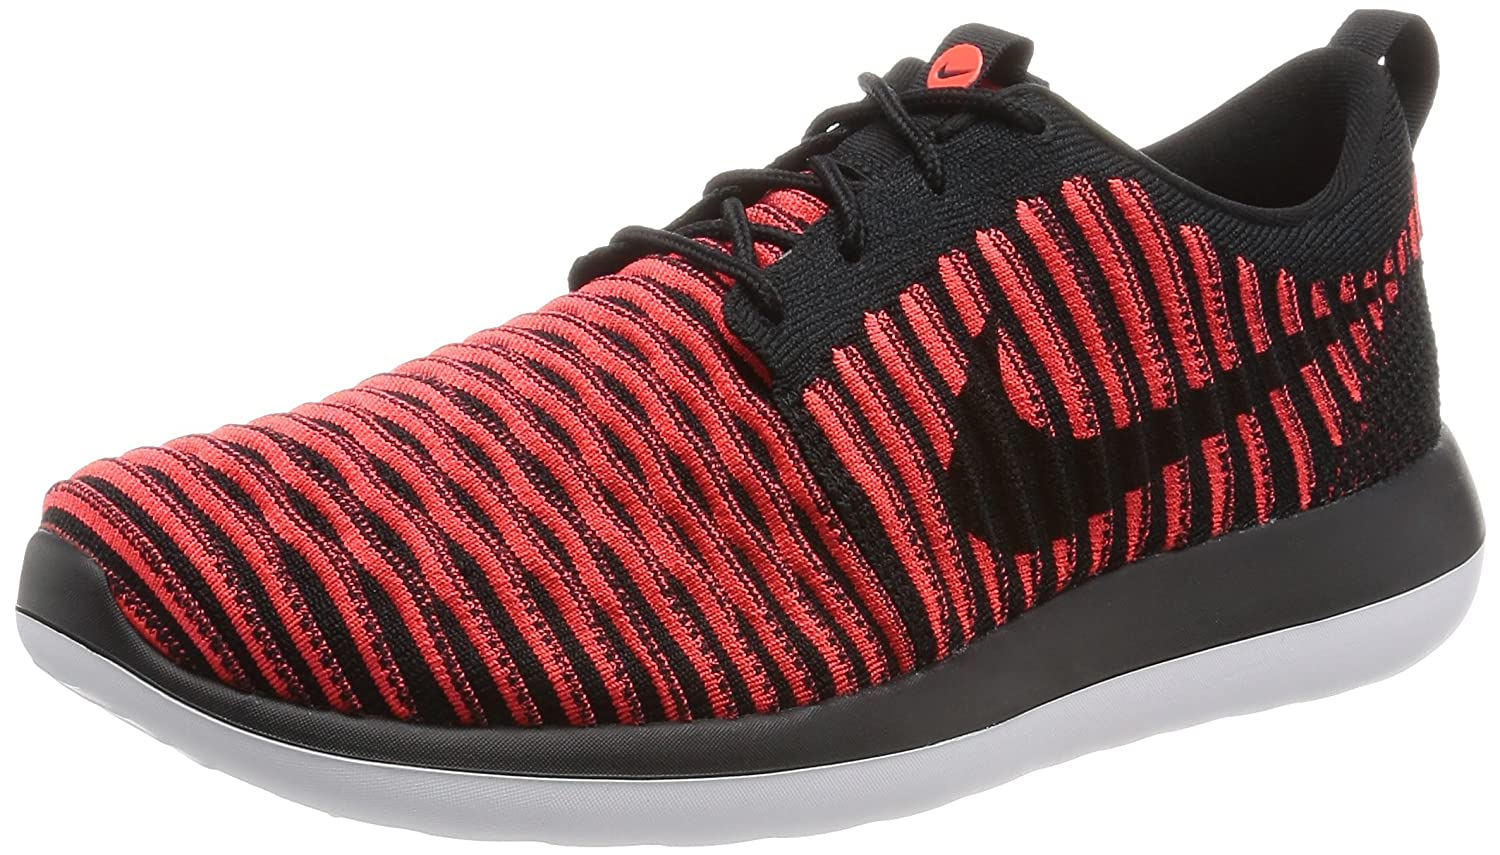 premium selection c2c37 a05de Nike Mens Roshe Two Flyknit Black/Black/Bright Crimson Running Shoe 9 Men US